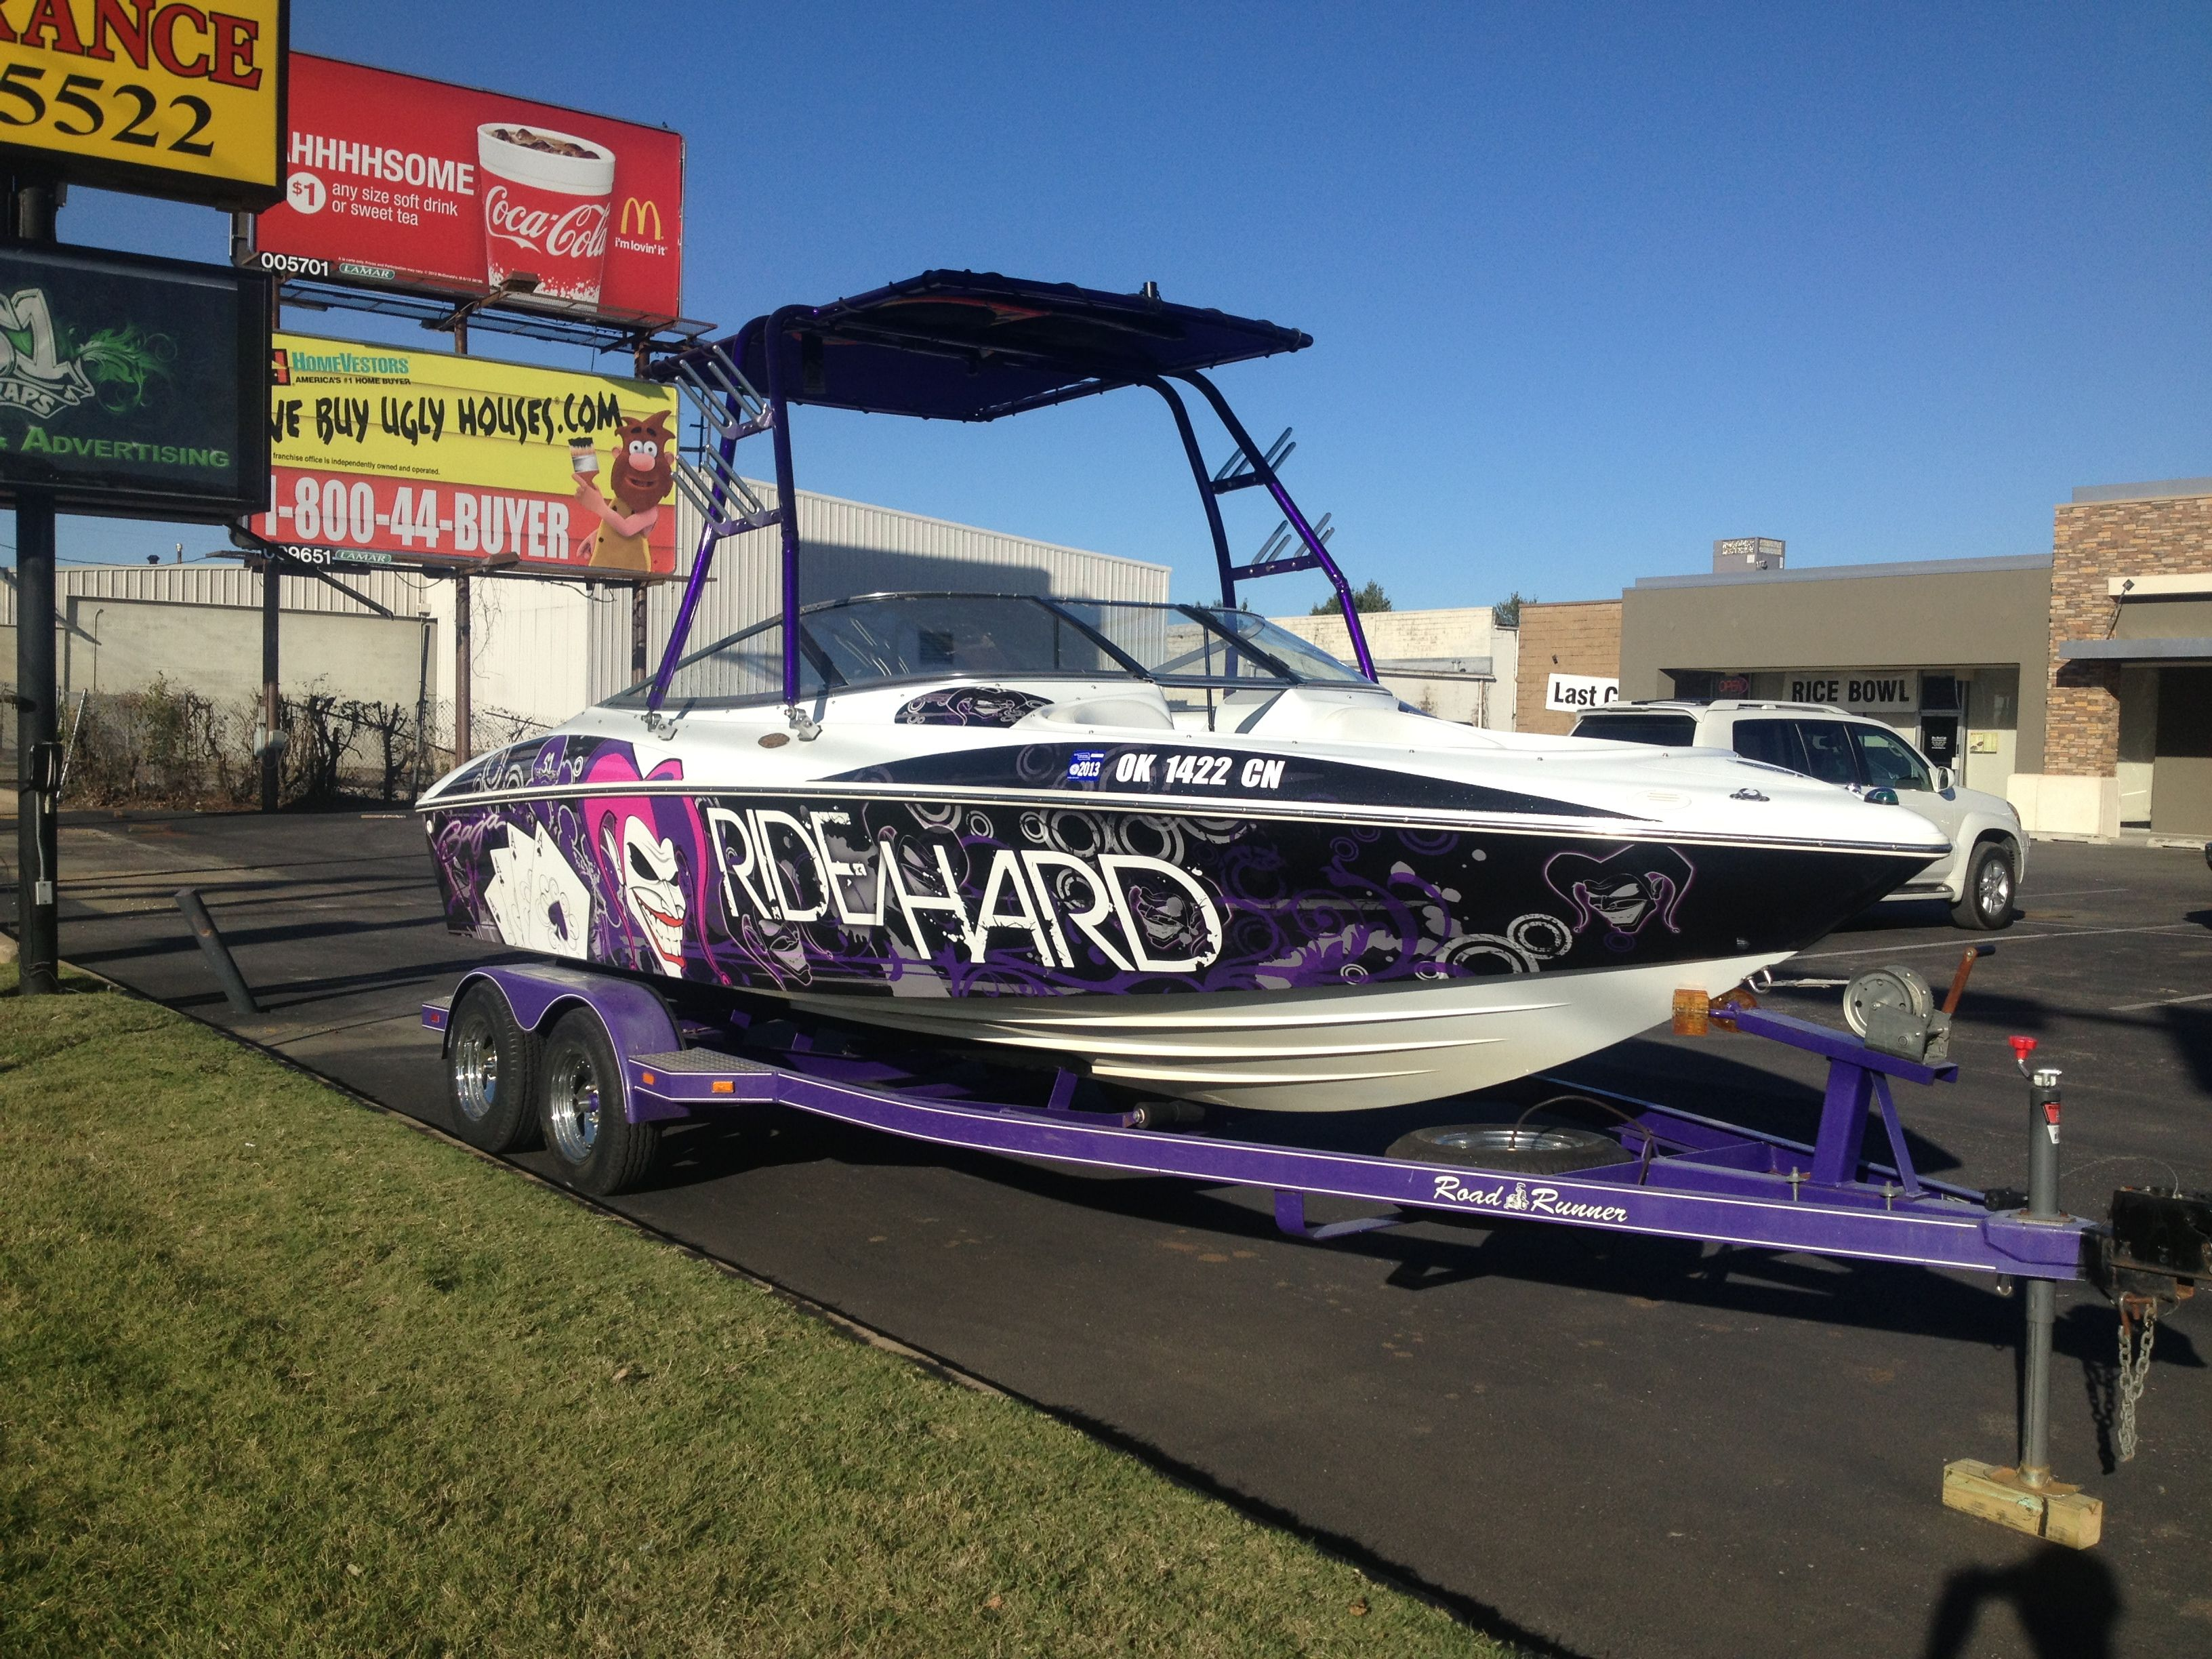 Custom Design Ride Hard Joker Wakeboard Boat Wrap Boat Wraps - Sporting boat decalsbest boat wraps custom vinyl images on pinterest boat wraps